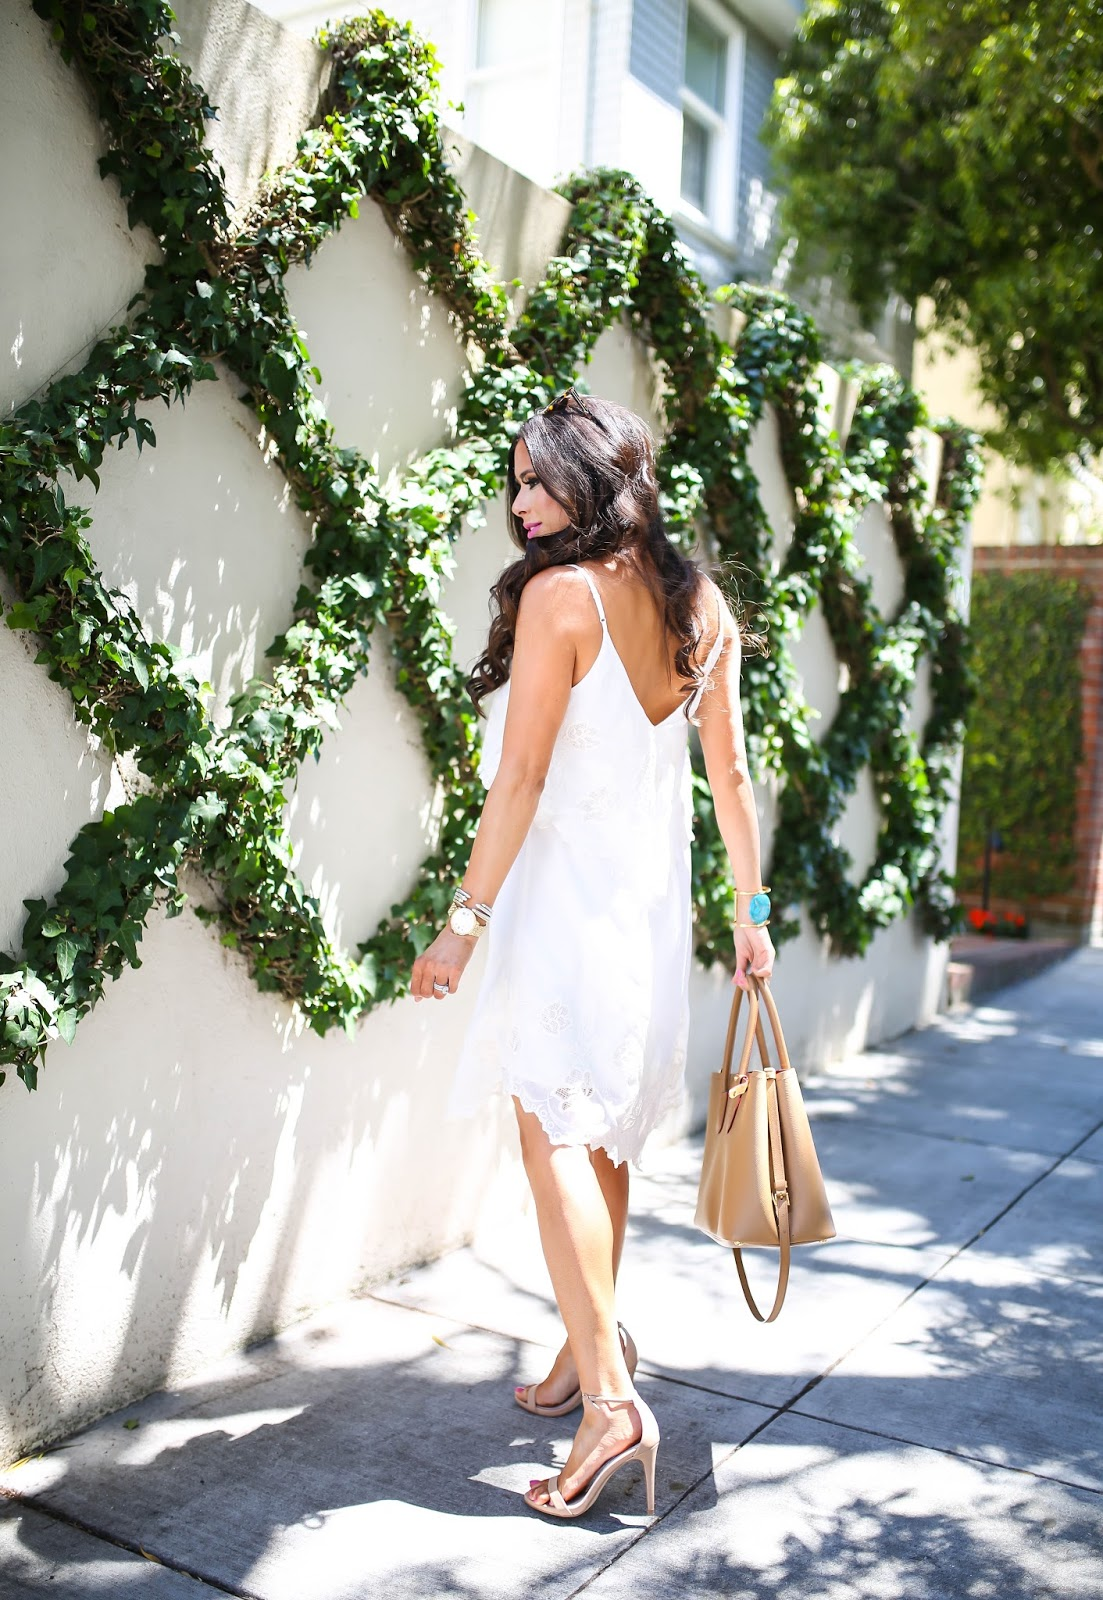 Summer Must Haves: A Summer Must-Have: Little White Dress